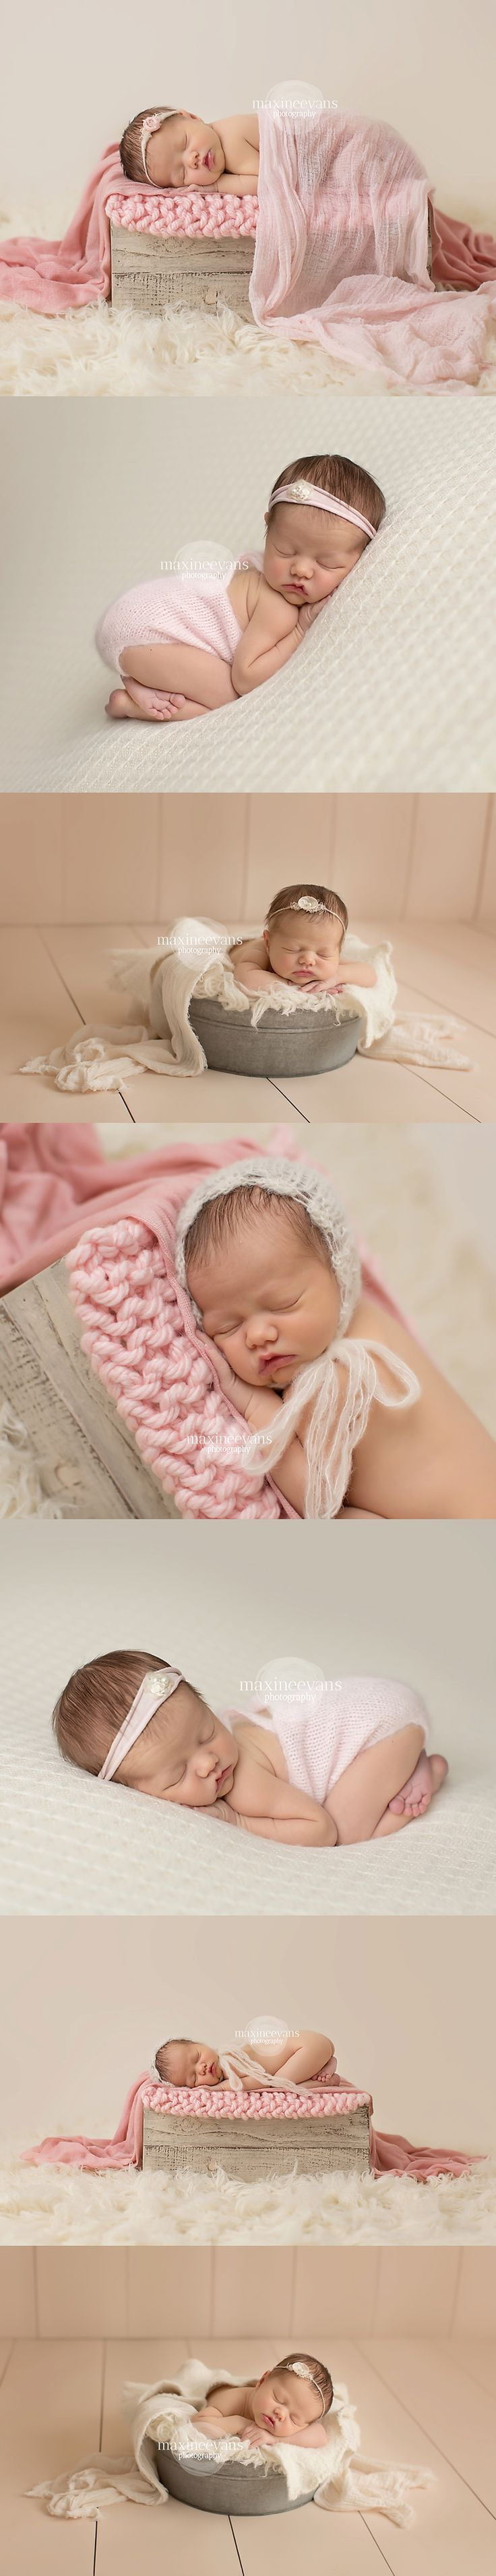 Gorgeous Newborn Baby Girl! Los Angeles Newborn Photographer